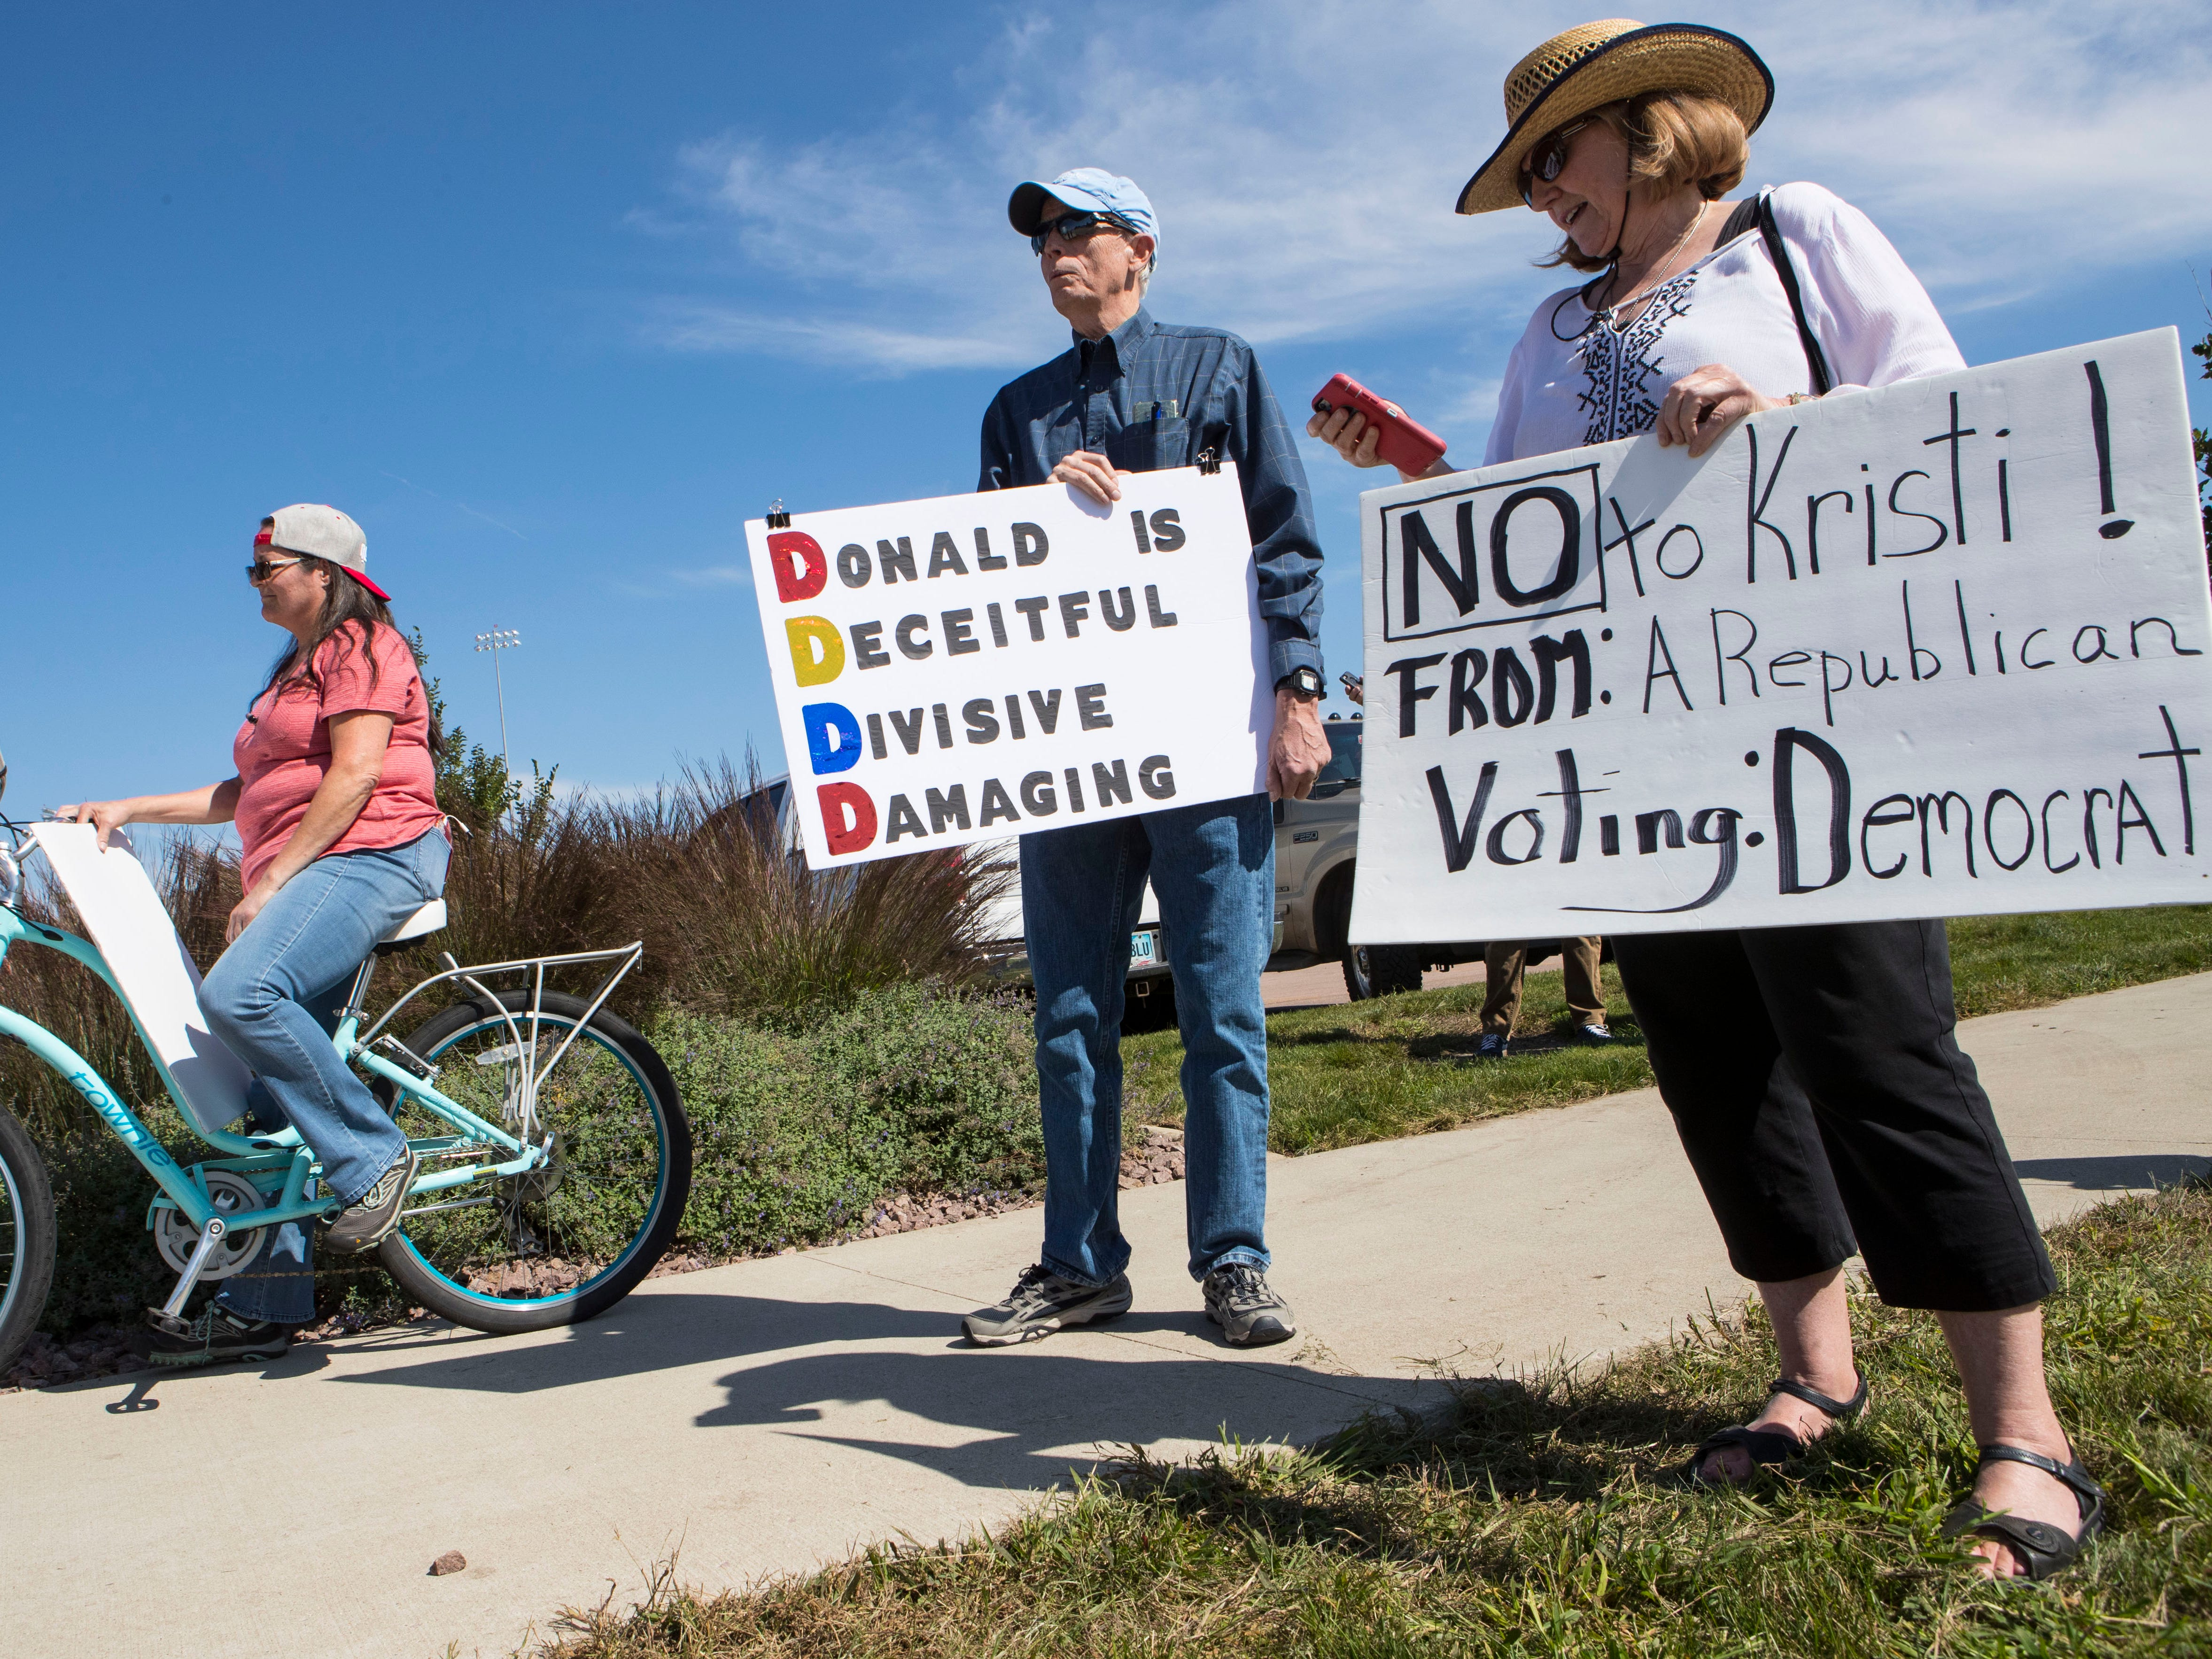 Protesters stand outside of the Denny Sanford Premier Center where President Donald Trump is attending a closed-door fundraiser for Republican gubernatorial hopeful Kristi Noem on Friday, Sept. 7, 2018 in Sioux Falls, S.D.